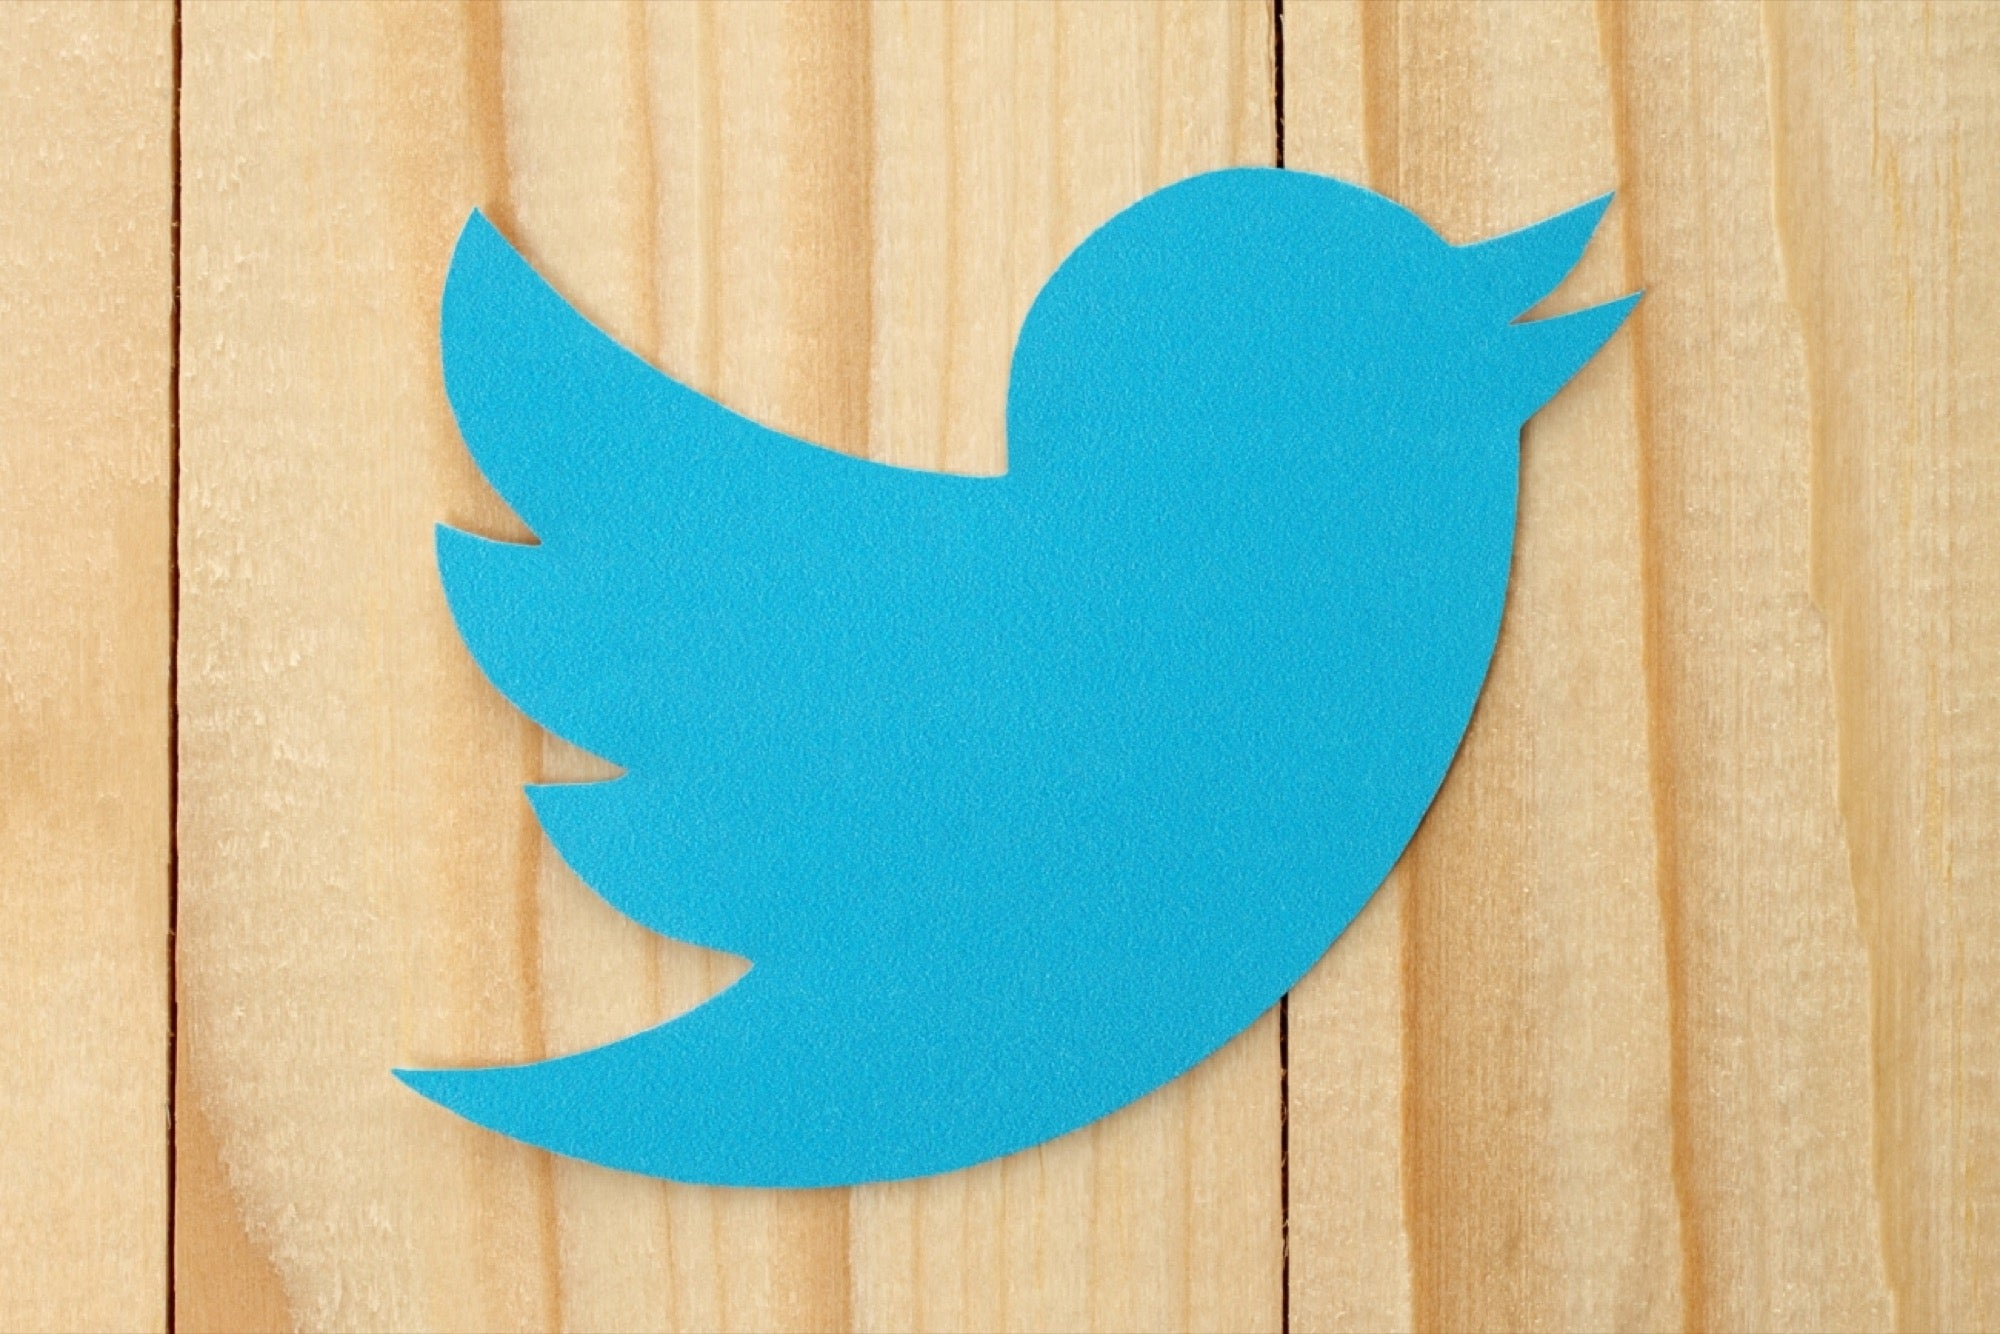 35c7276afcd2 These Are the Secrets to a Successful Twitter Campaign